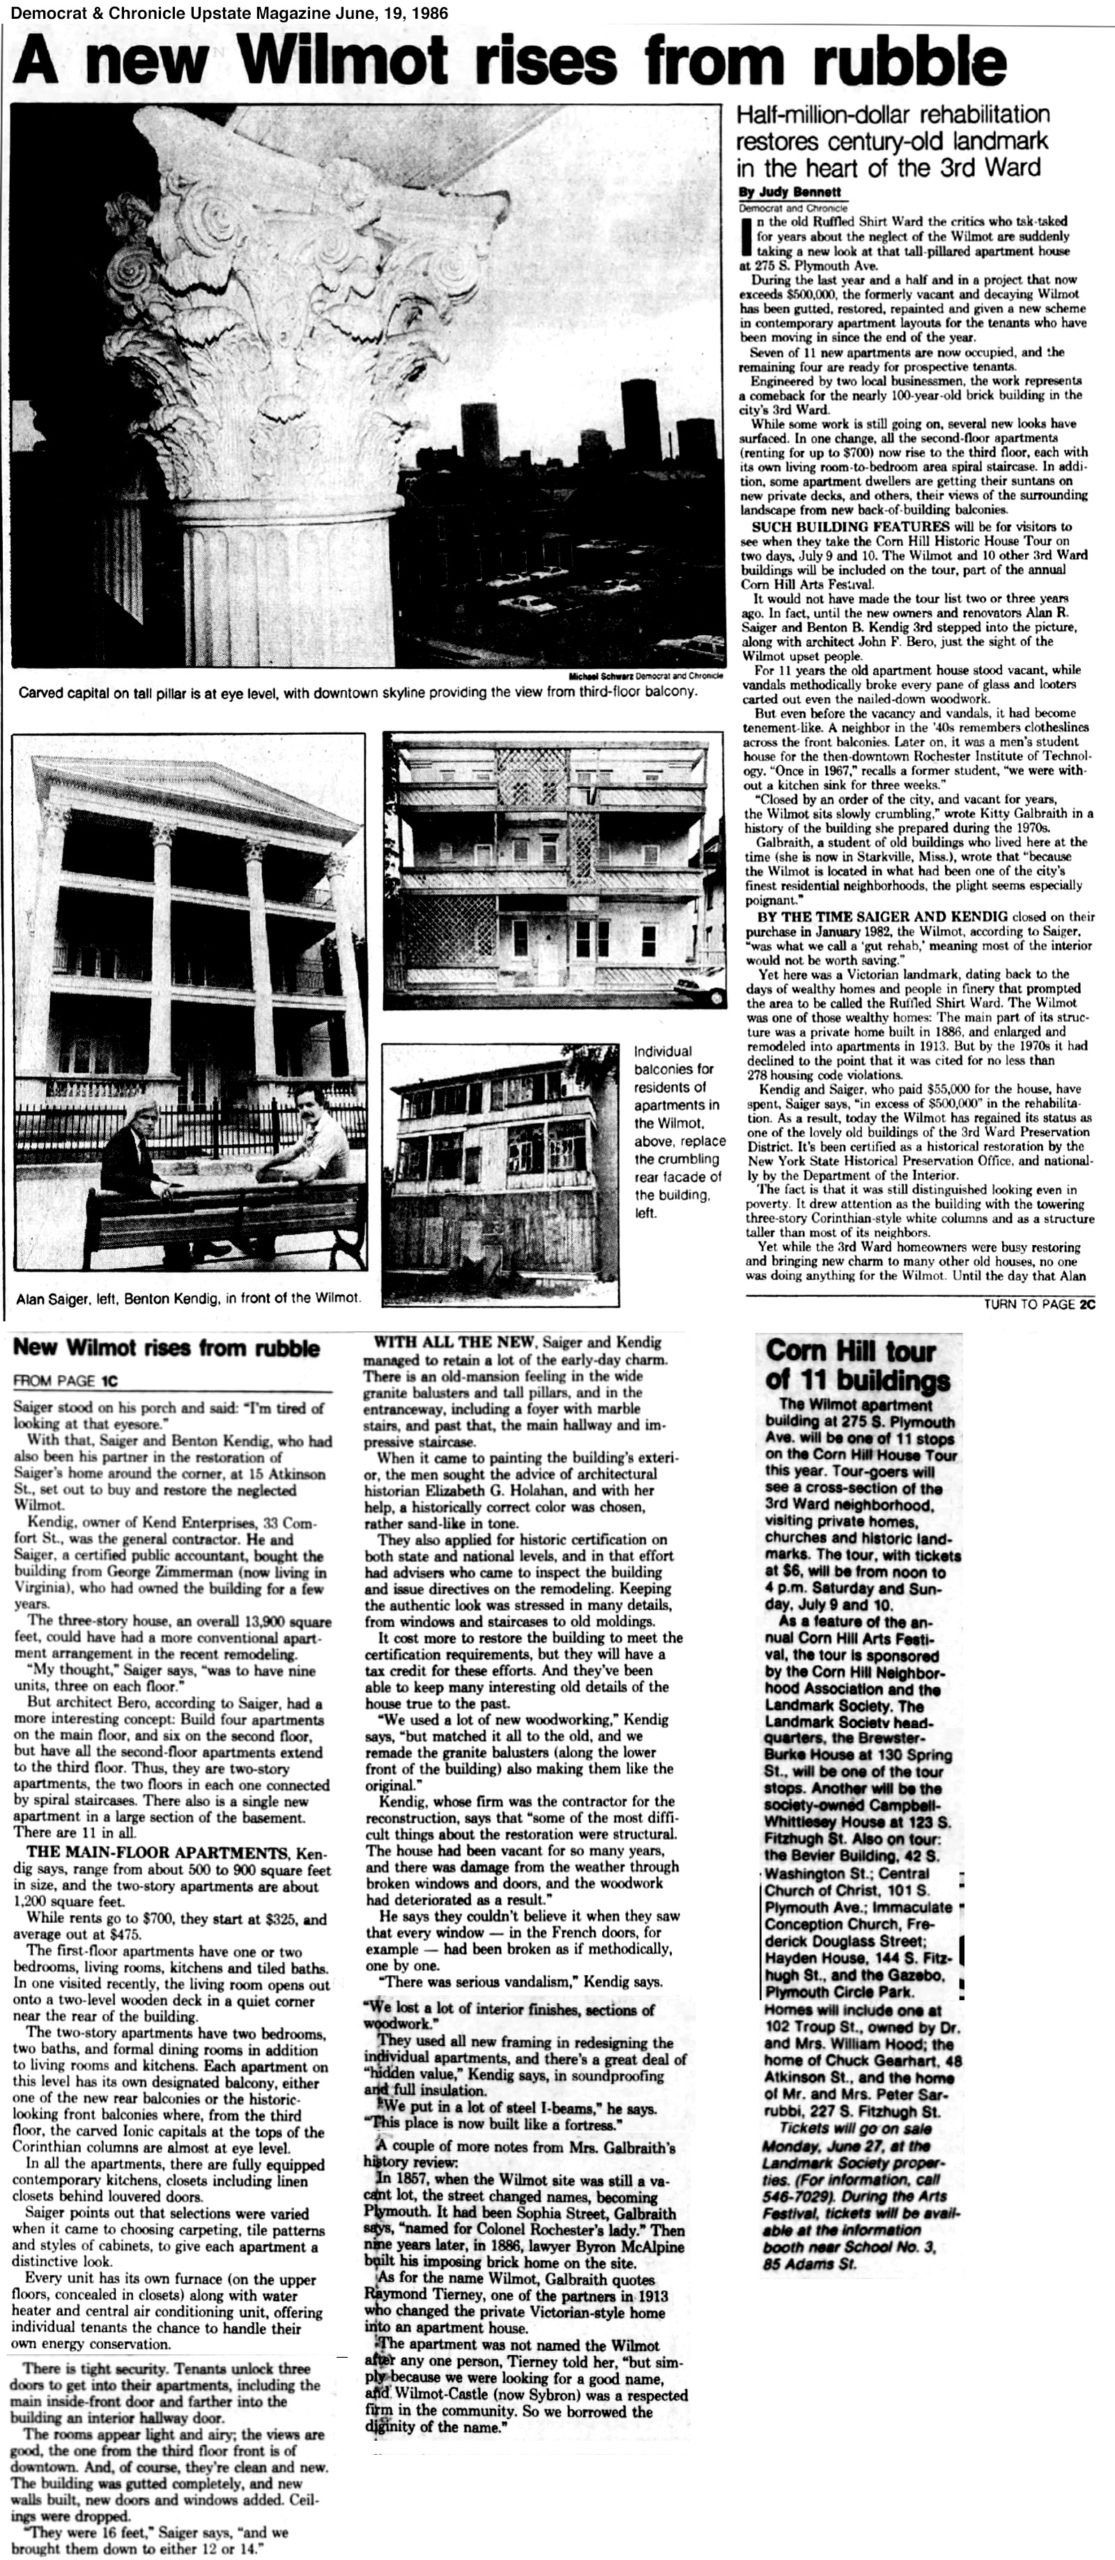 Democrat & Chronicle article about Wilmot Building June 19, 1983